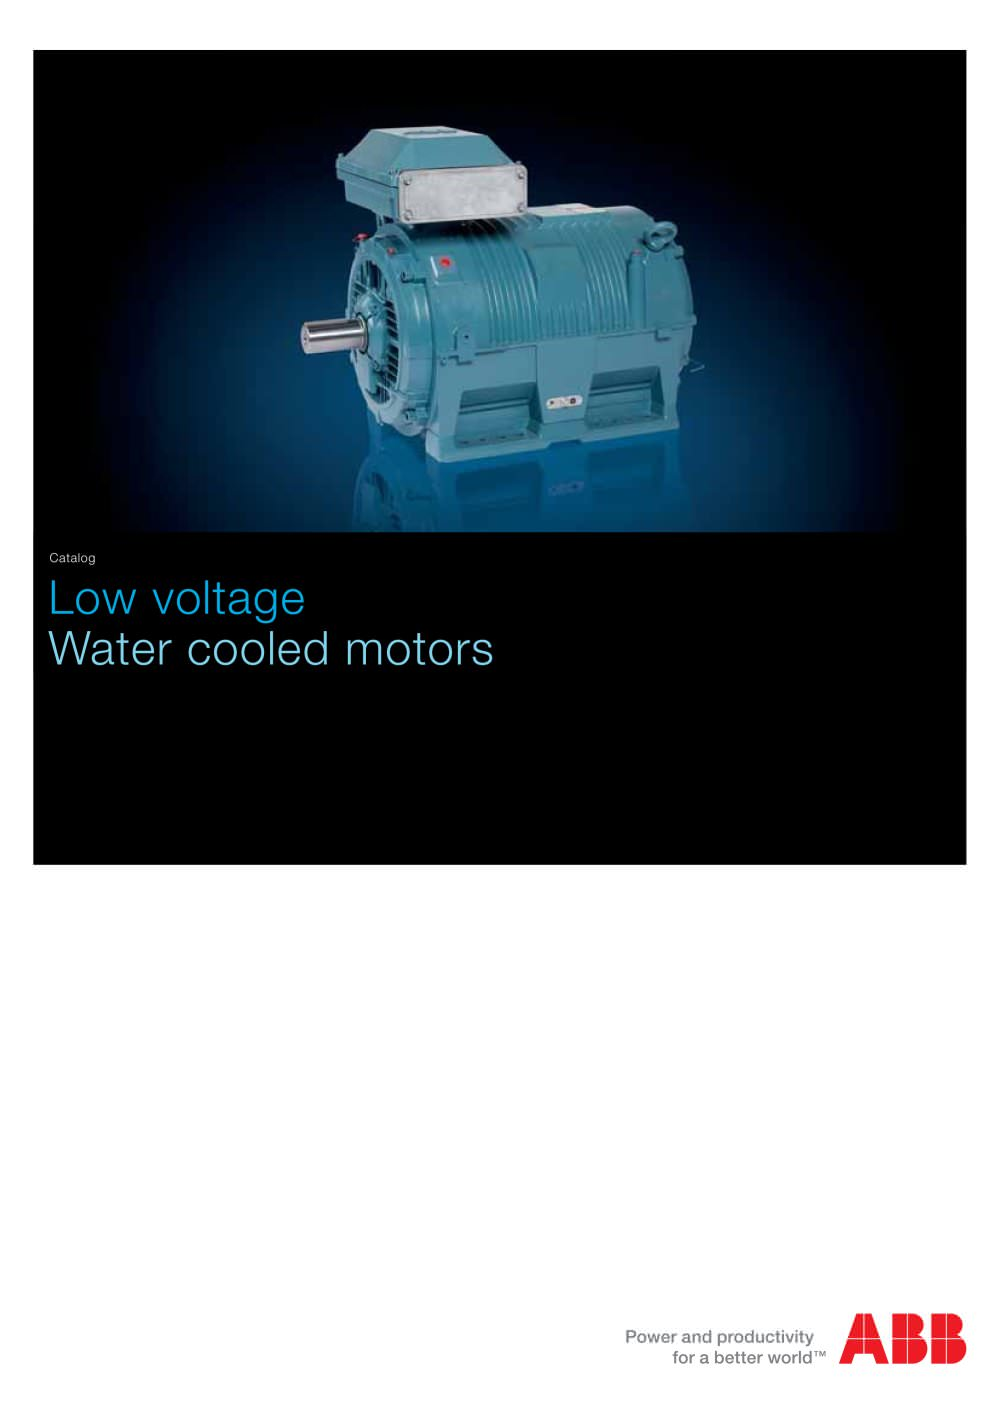 Low voltage water cooled motors abb motors drives and power low voltage water cooled motors 1 44 pages sciox Images